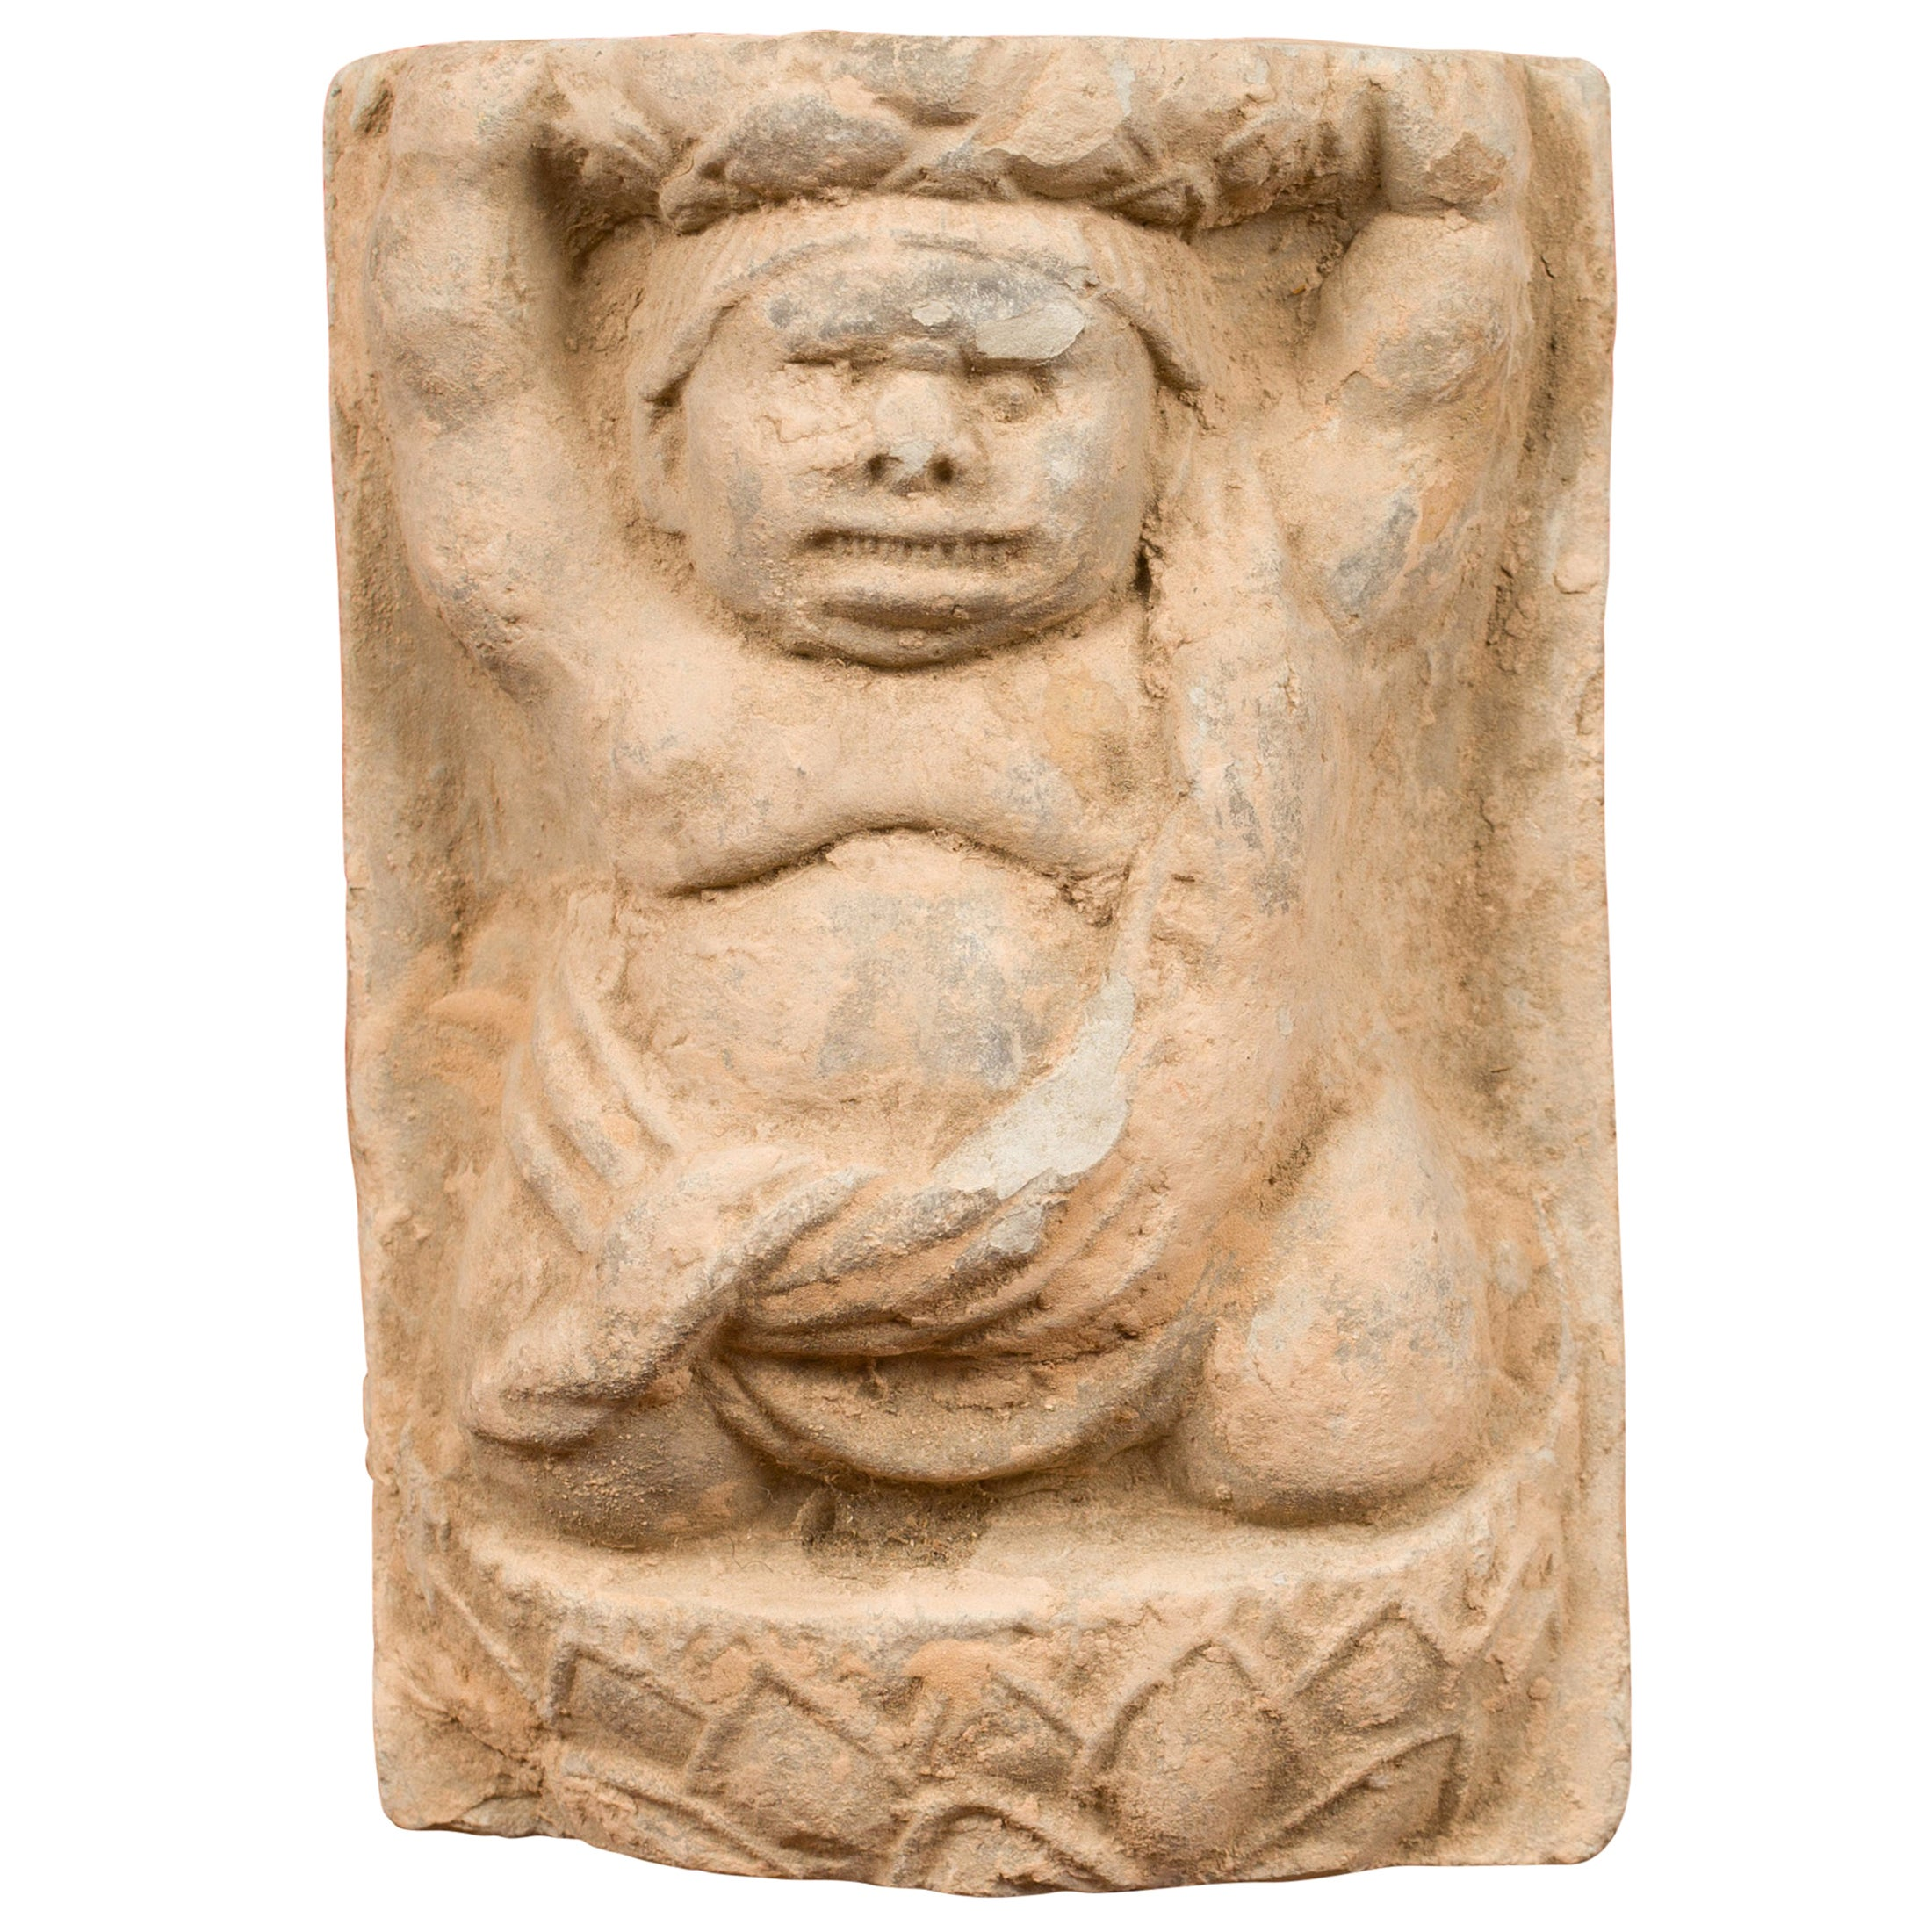 Chinese Tang Dynasty Carved Stone Wall Plaque Depicting a Male Figure